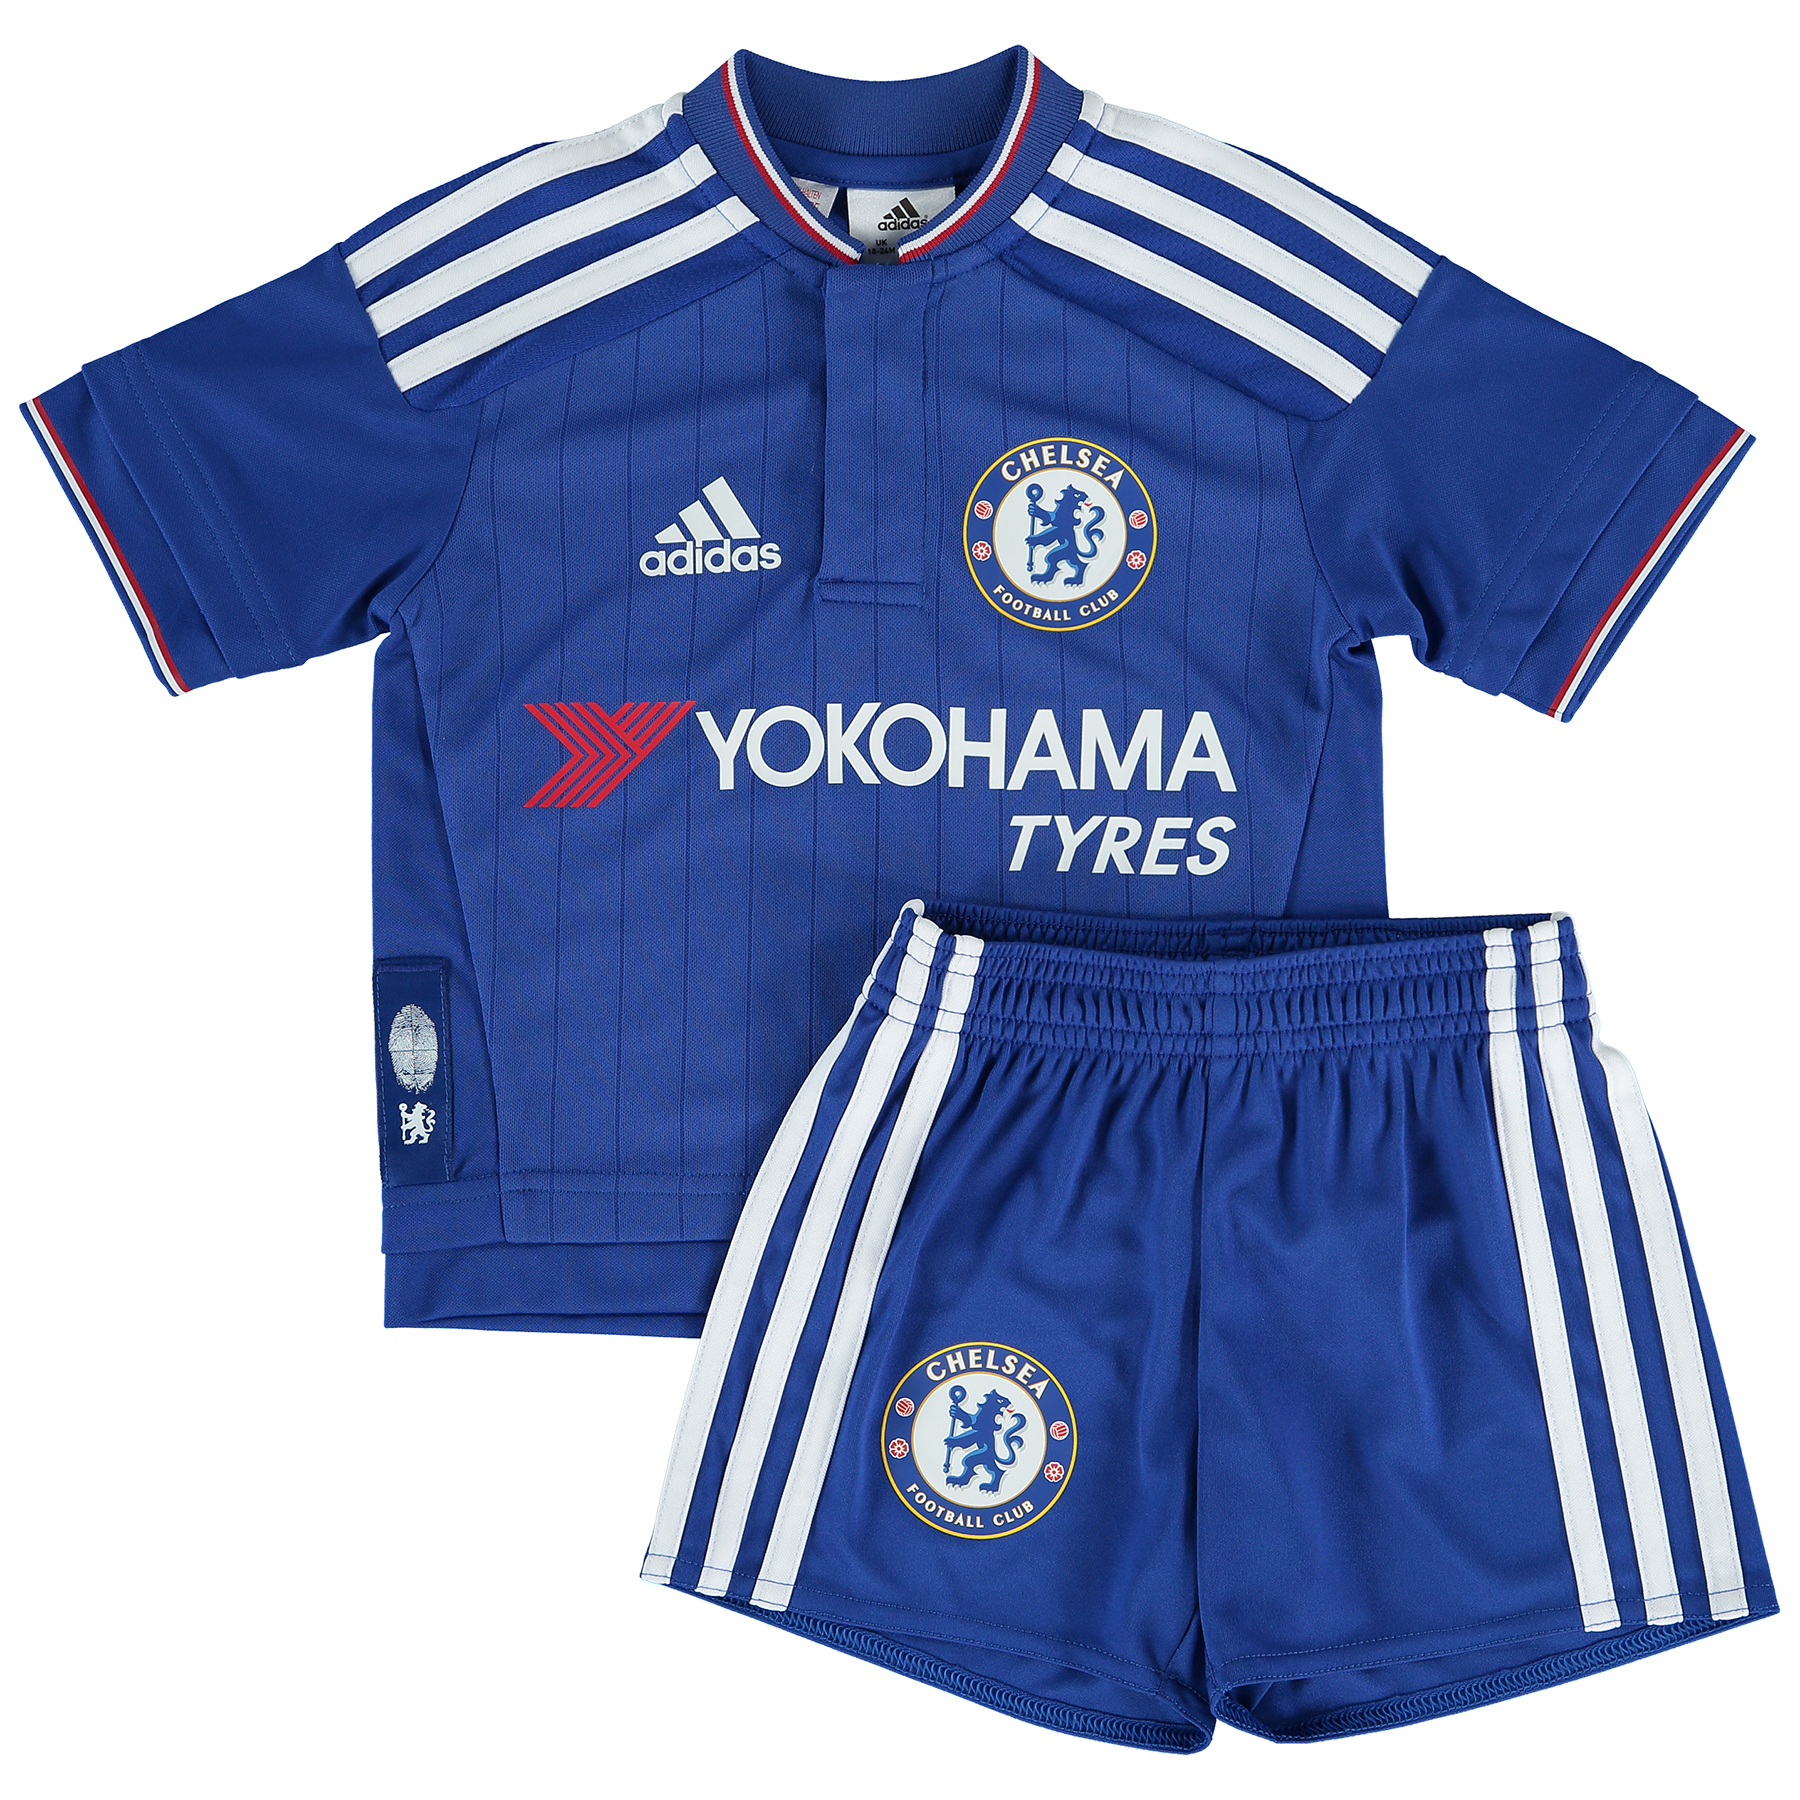 Chelsea Home Mini Kit 2015/16 The youngest Chelsea fans can show their support in this mini kit. This mini version of the kit the Blues wear to home matches features their proud team badge on the chest and above the right hem of the shorts. Budding players can join the likes of Champions Diego Costa, Cesc Fabregas and Eden Hazard in this new Chelsea Mini Kit!   Benefits: 7 cm inseam climalite® fabric sweeps sweat away from your skin Jersey: Ribbed crewneck; Engineered front fabric; Chelsea Football Club heat-transfer crest on left chest; Shorts: Elastic waist; Chelsea Football Club  heat-transfer crest above right hem This product is part of the adidas sustainable product program: Products are made in more sustainable ways to make the world a better place Every fibre counts: Recycled polyester saves resources and decreases emissions; Regular fit Jersey: 100% polyester interlock; Shorts: 100% recycled polyester interlock